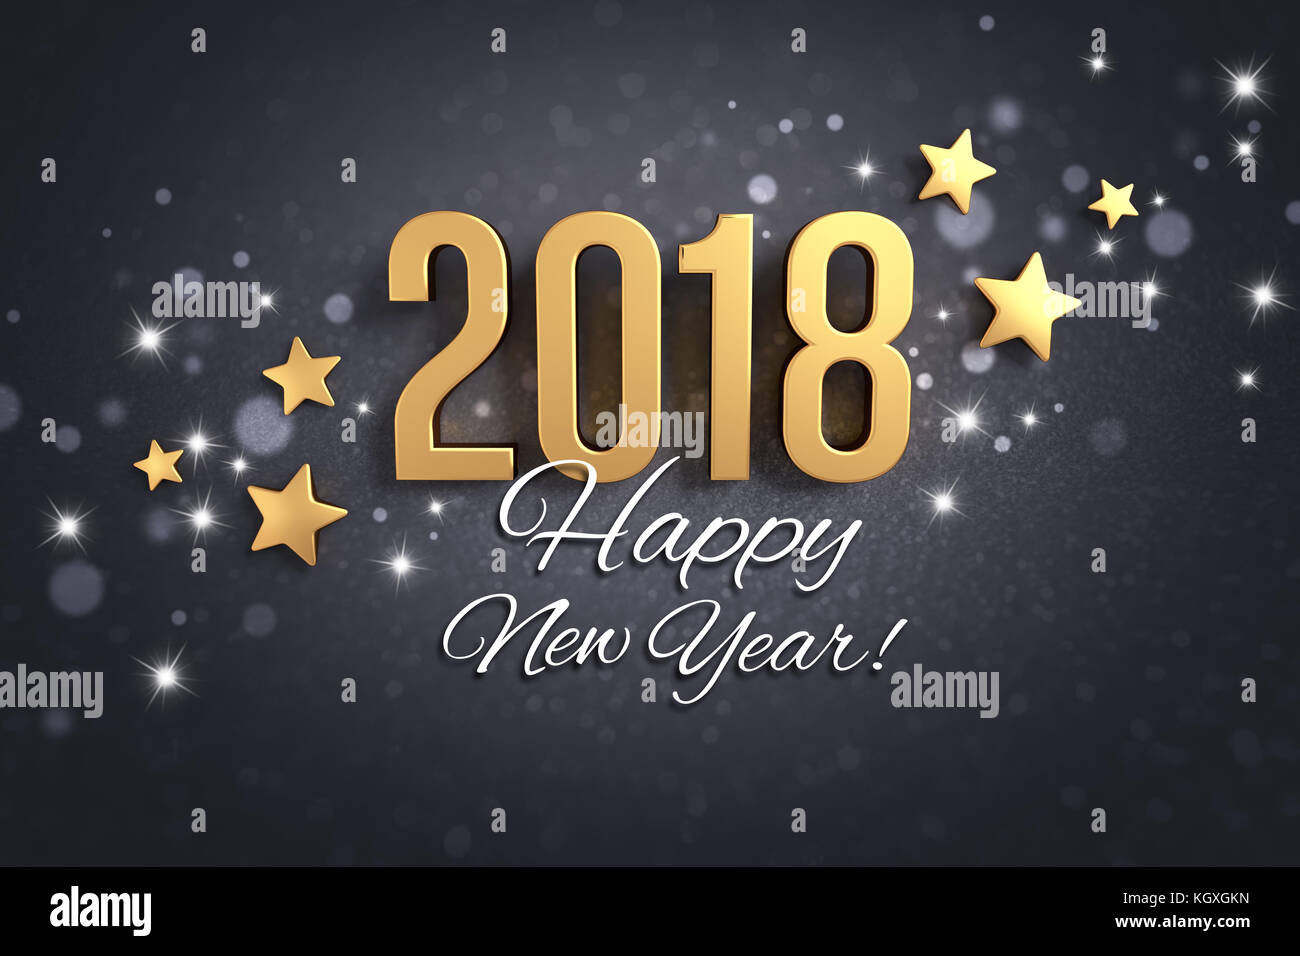 Happy New Year Greetings And Date 2018 Colored In Gold On A